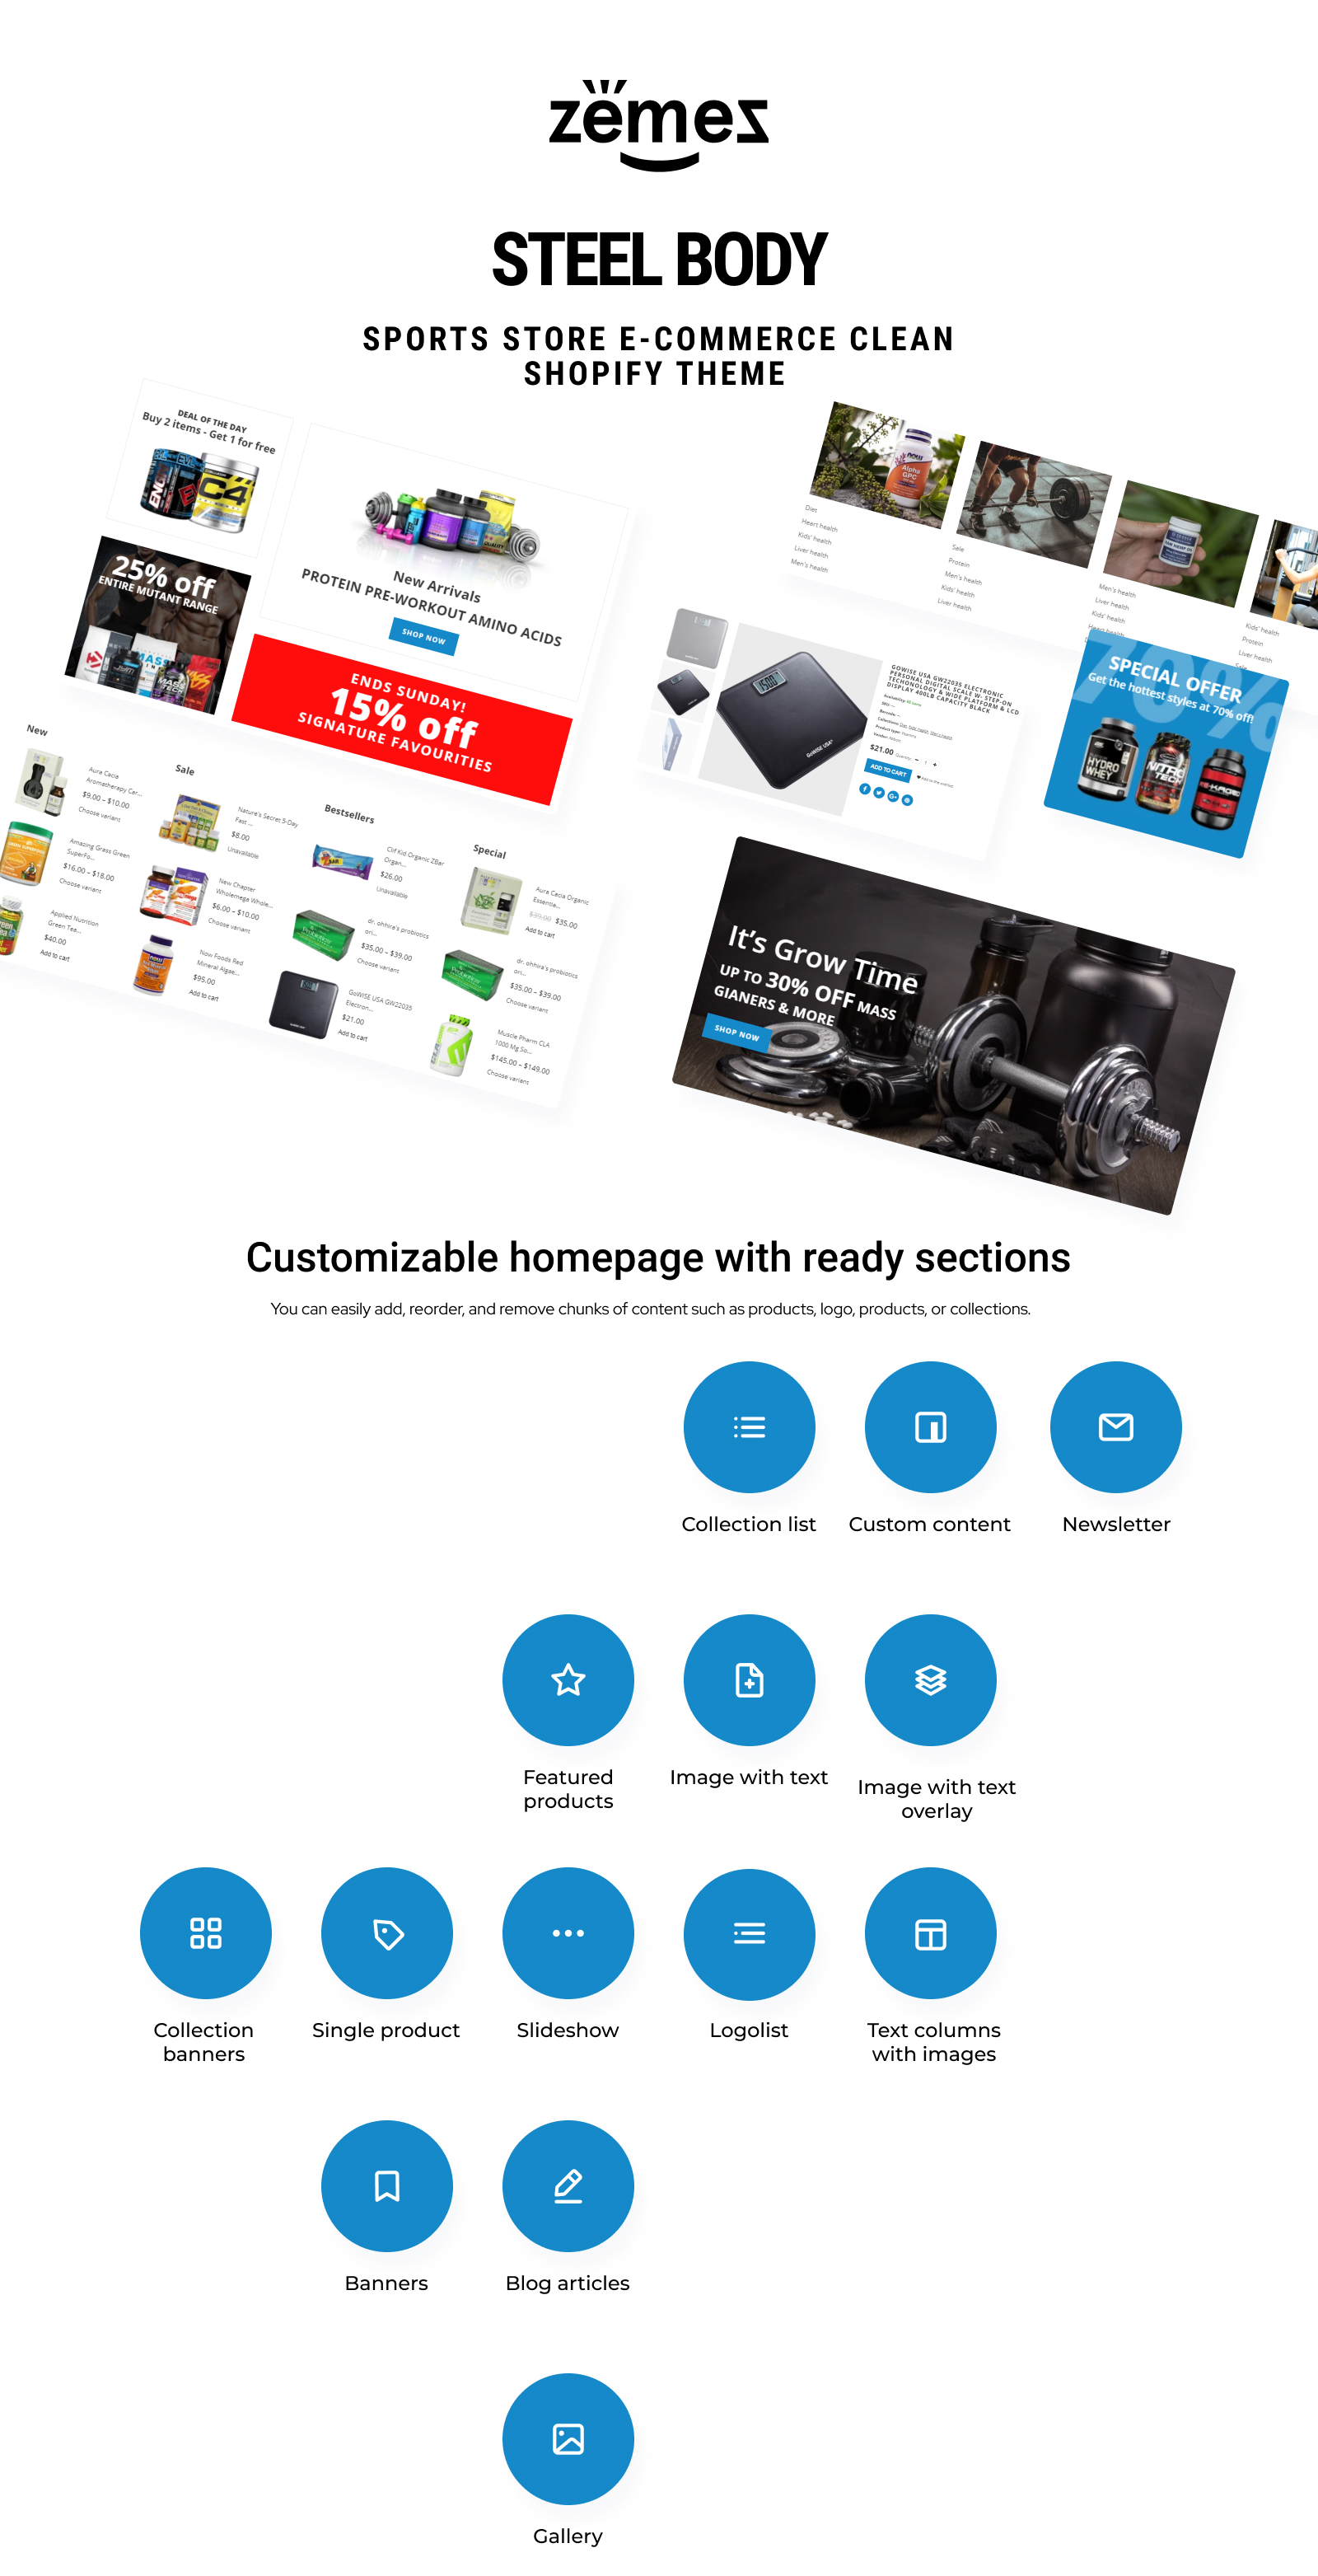 Steel Body - Sports Store E-commerce Clean Shopify Theme